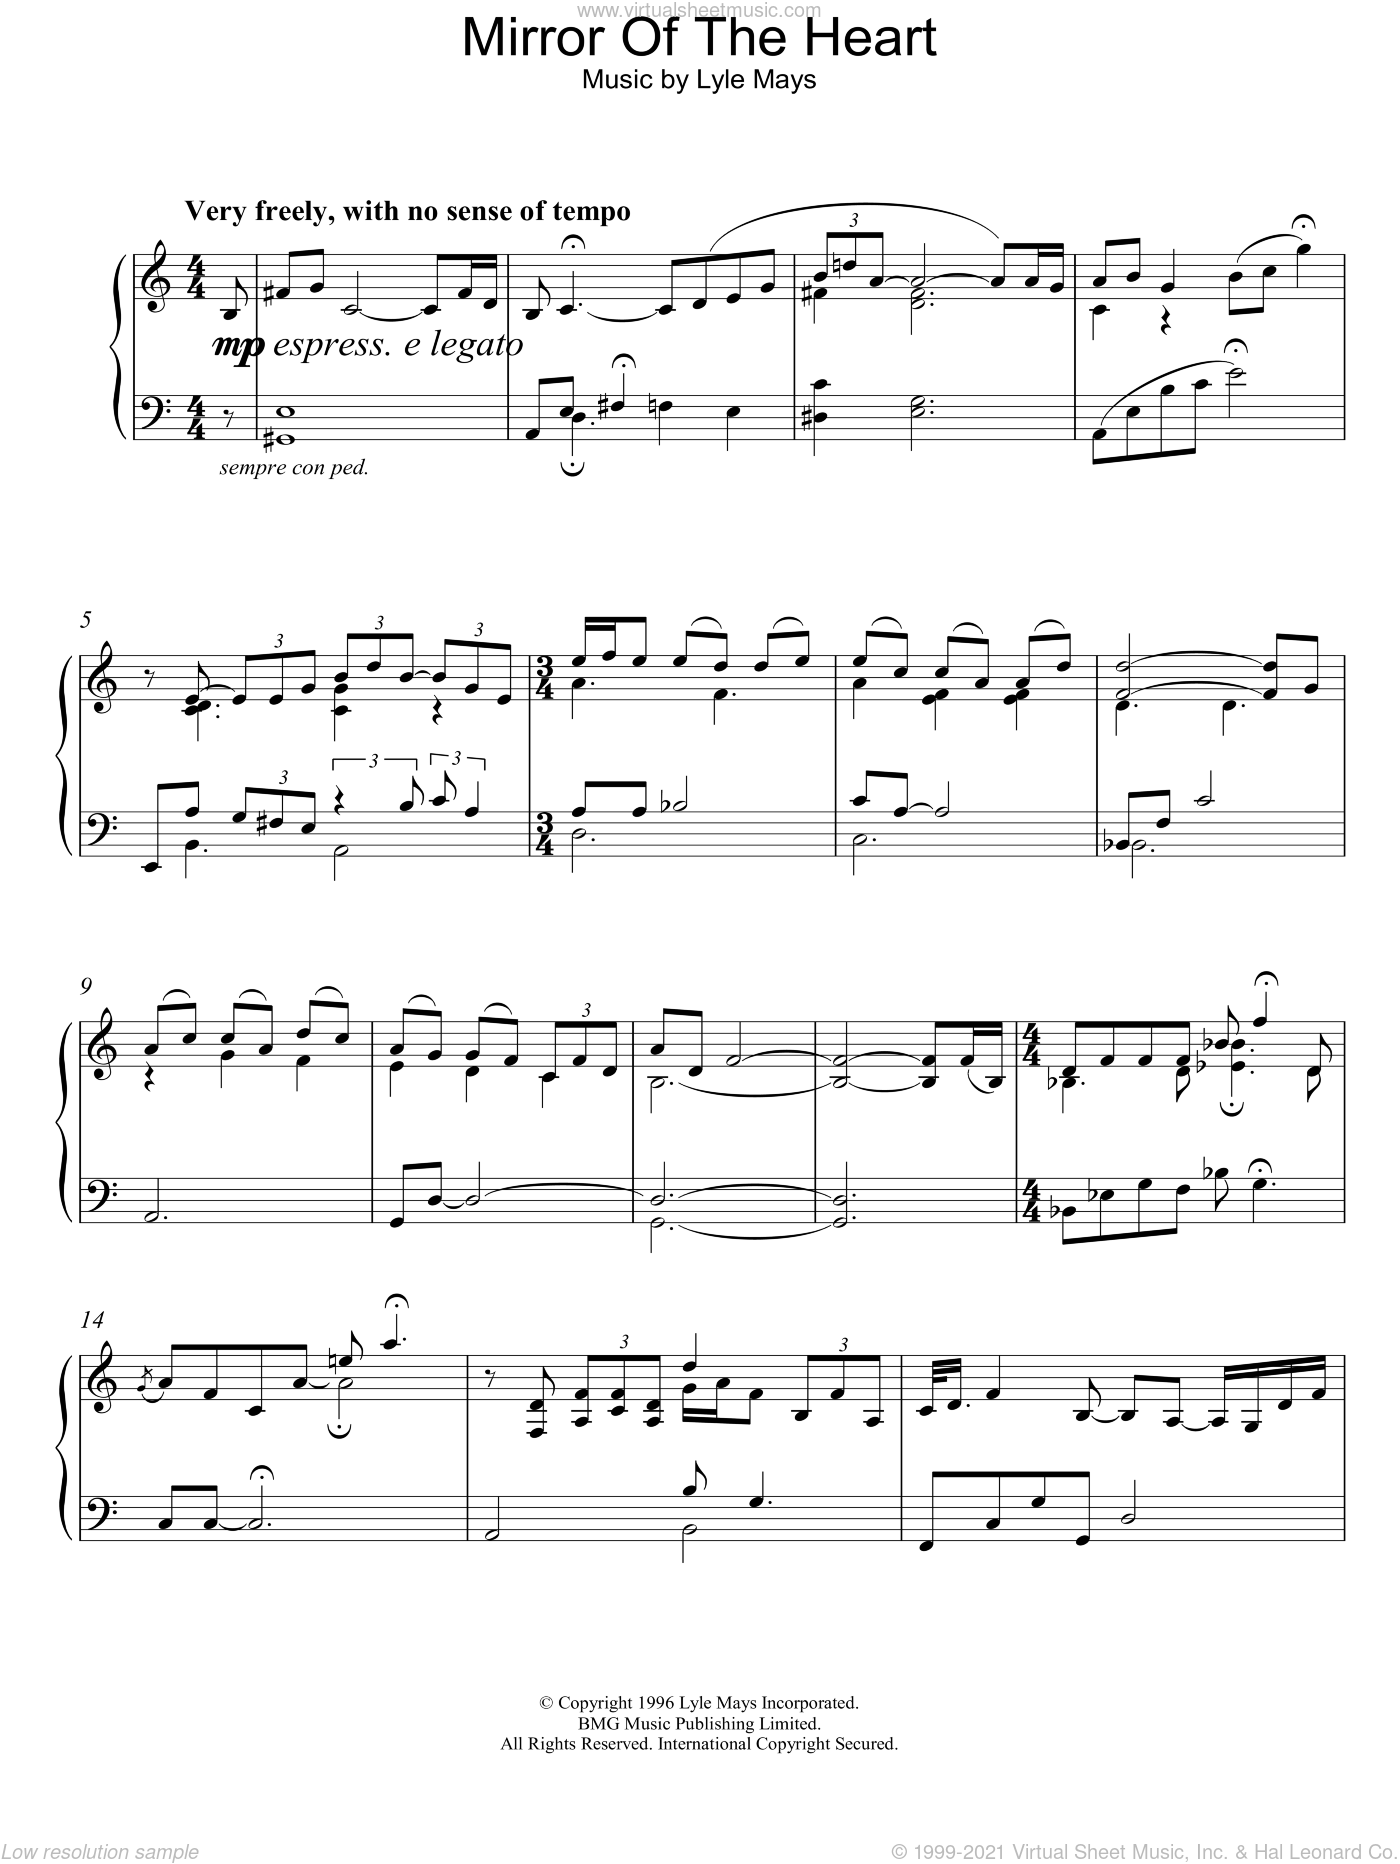 Mirror Of The Heart sheet music for piano solo by Lyle Mays. Score Image Preview.